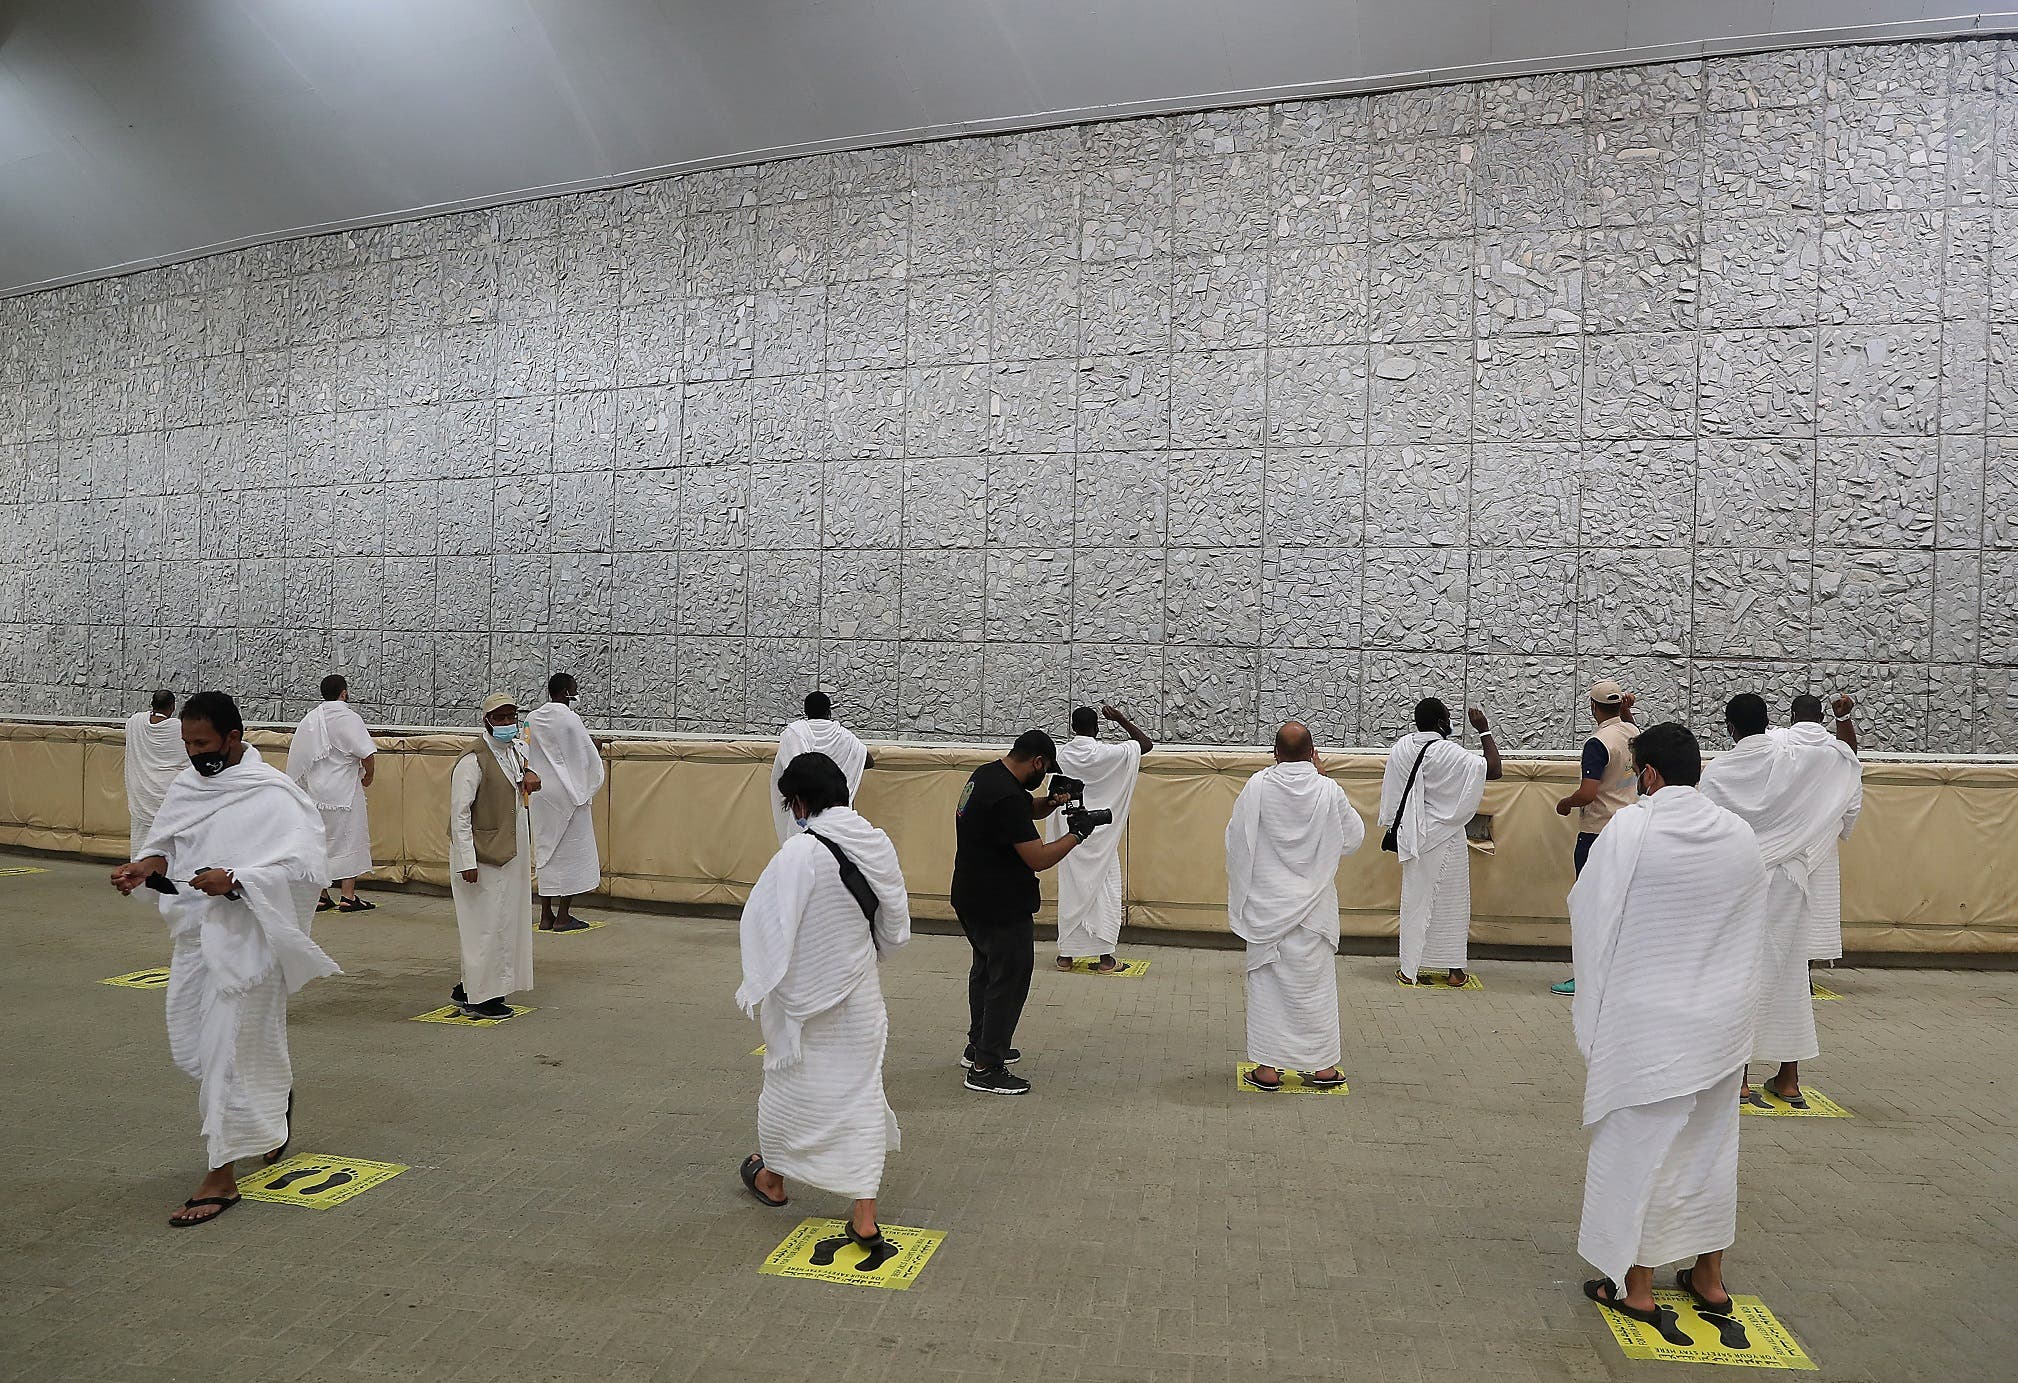 A picture taken on July 31, 2020 shows Muslim worshippers throwing pebbles as part of the symbolic al-A'qabah (stoning of the devil ritual) at the Jamarat Bridge during the Hajj pilgrimage in Mina, near Saudi Arabia's holy city of Mecca. (File photo: AFP)